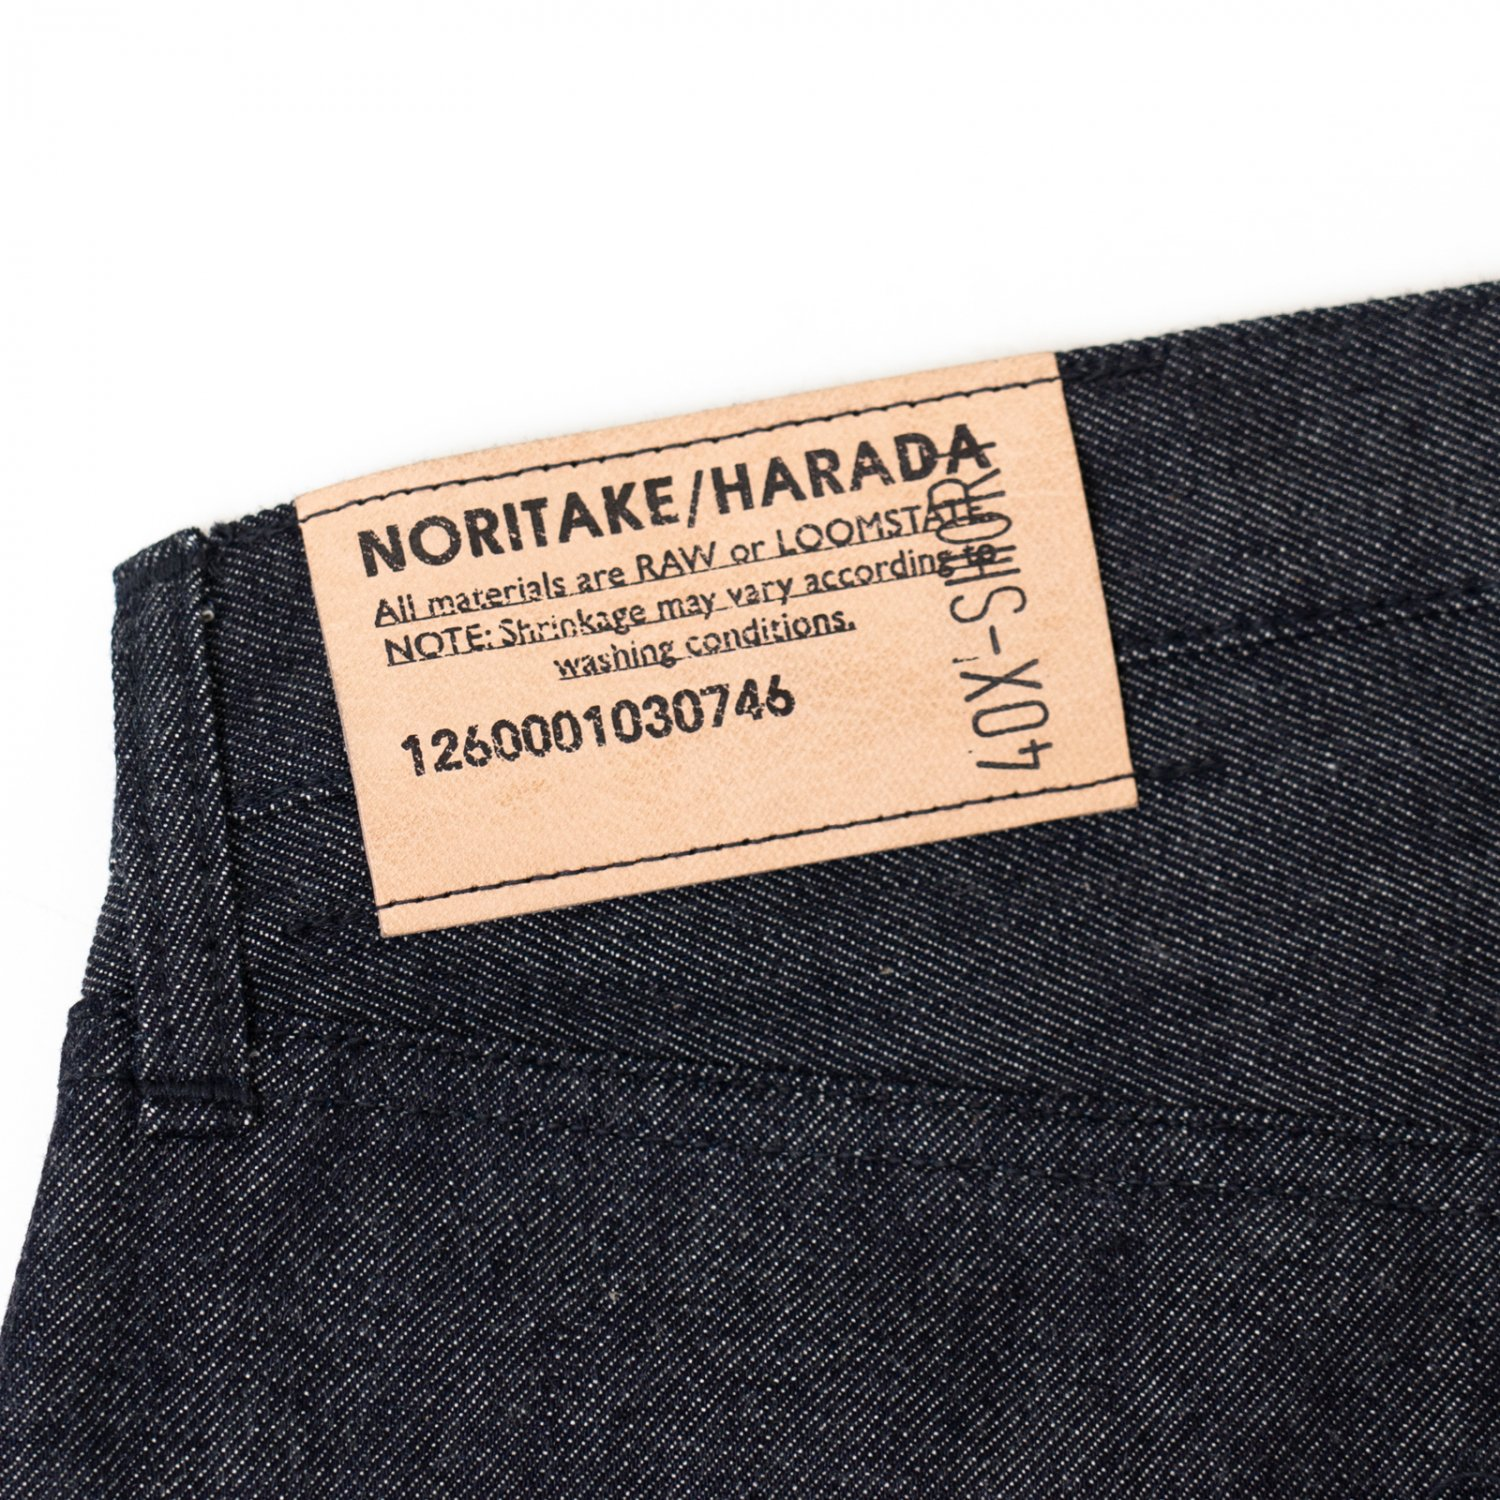 NORITAKE/HARADA * Denim Pants 40inch X-Short